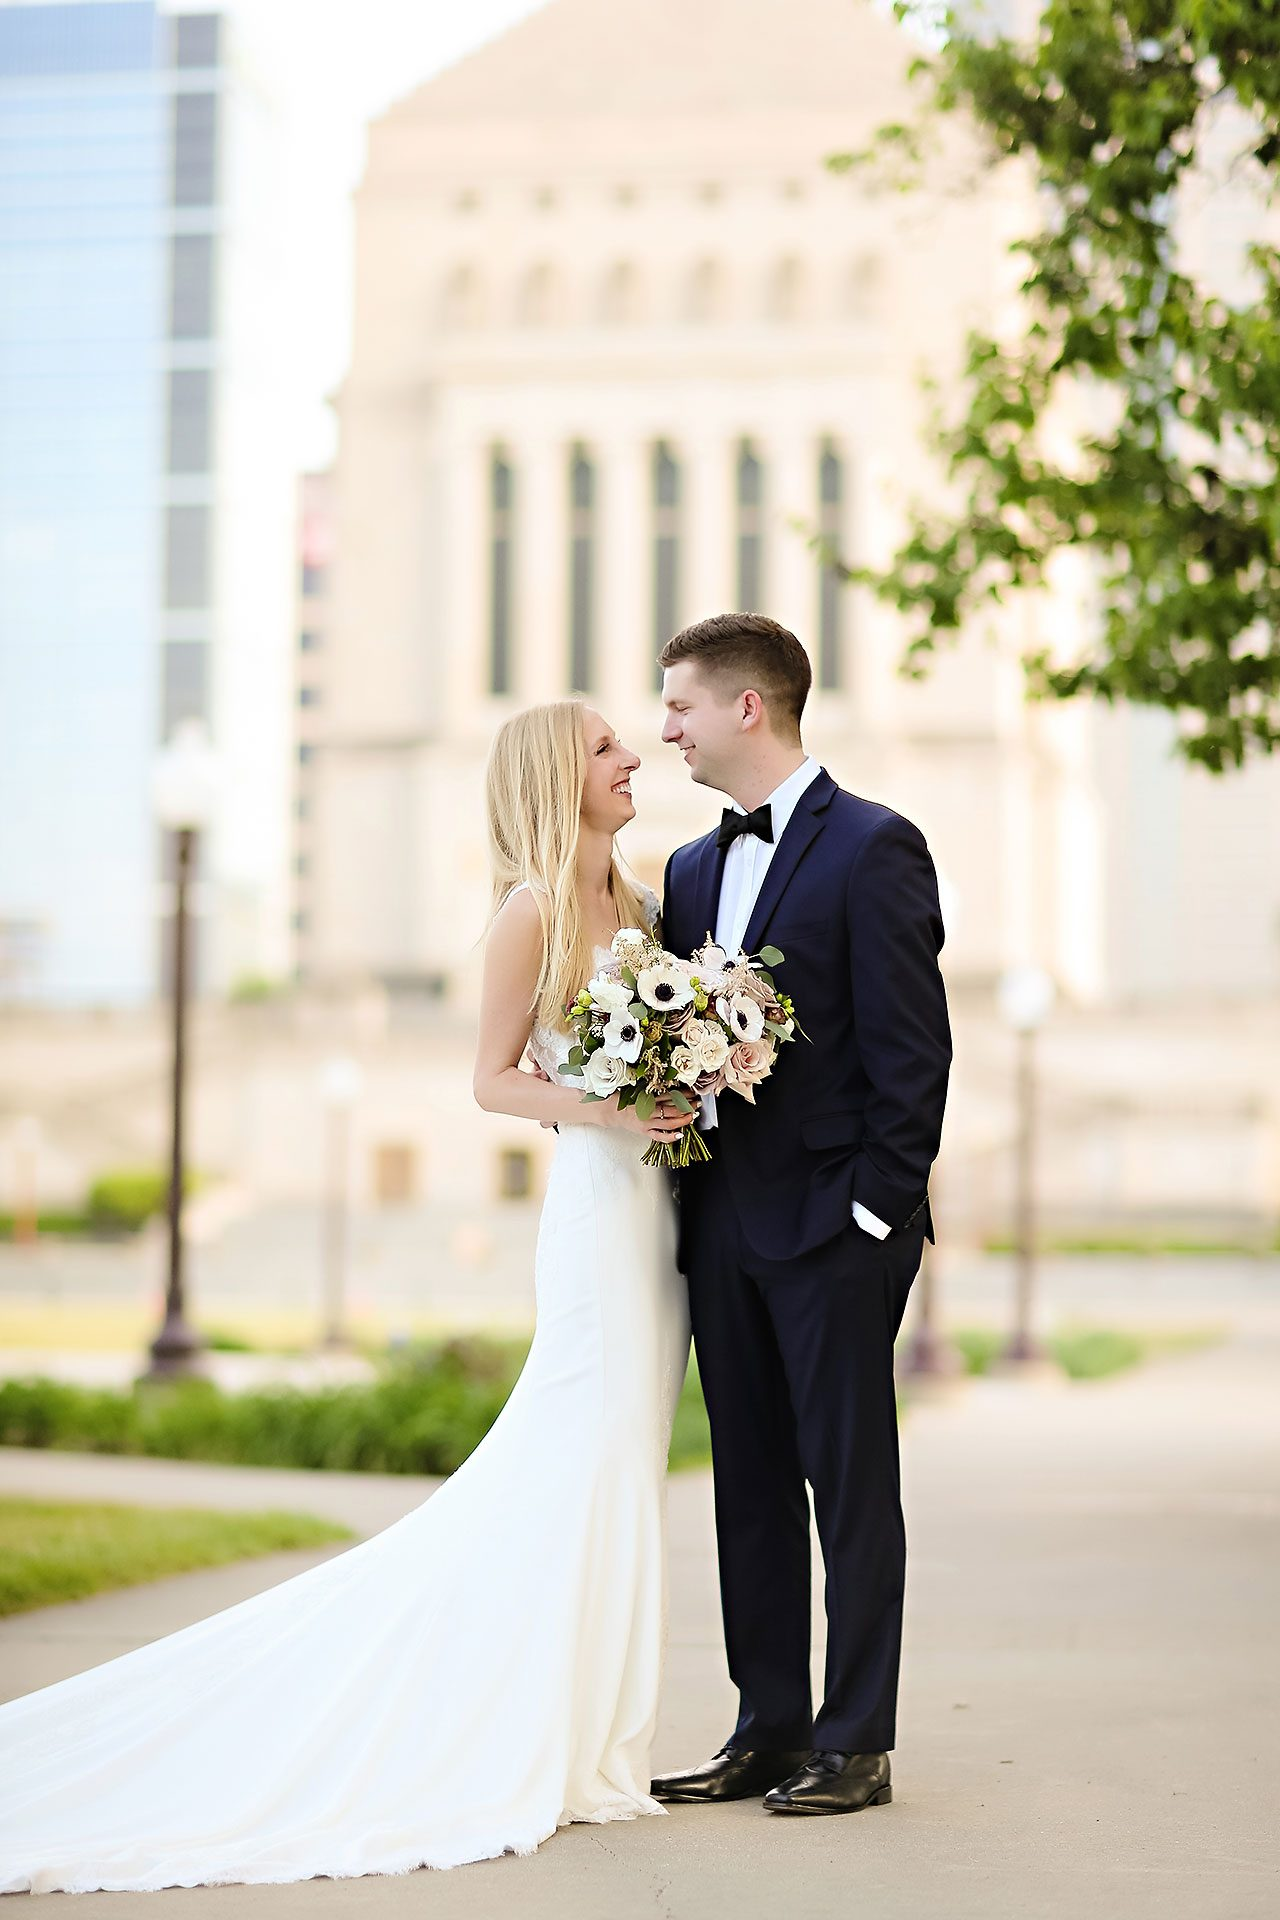 Molly Declan Scottish Rite Indianapolis Wedding 174